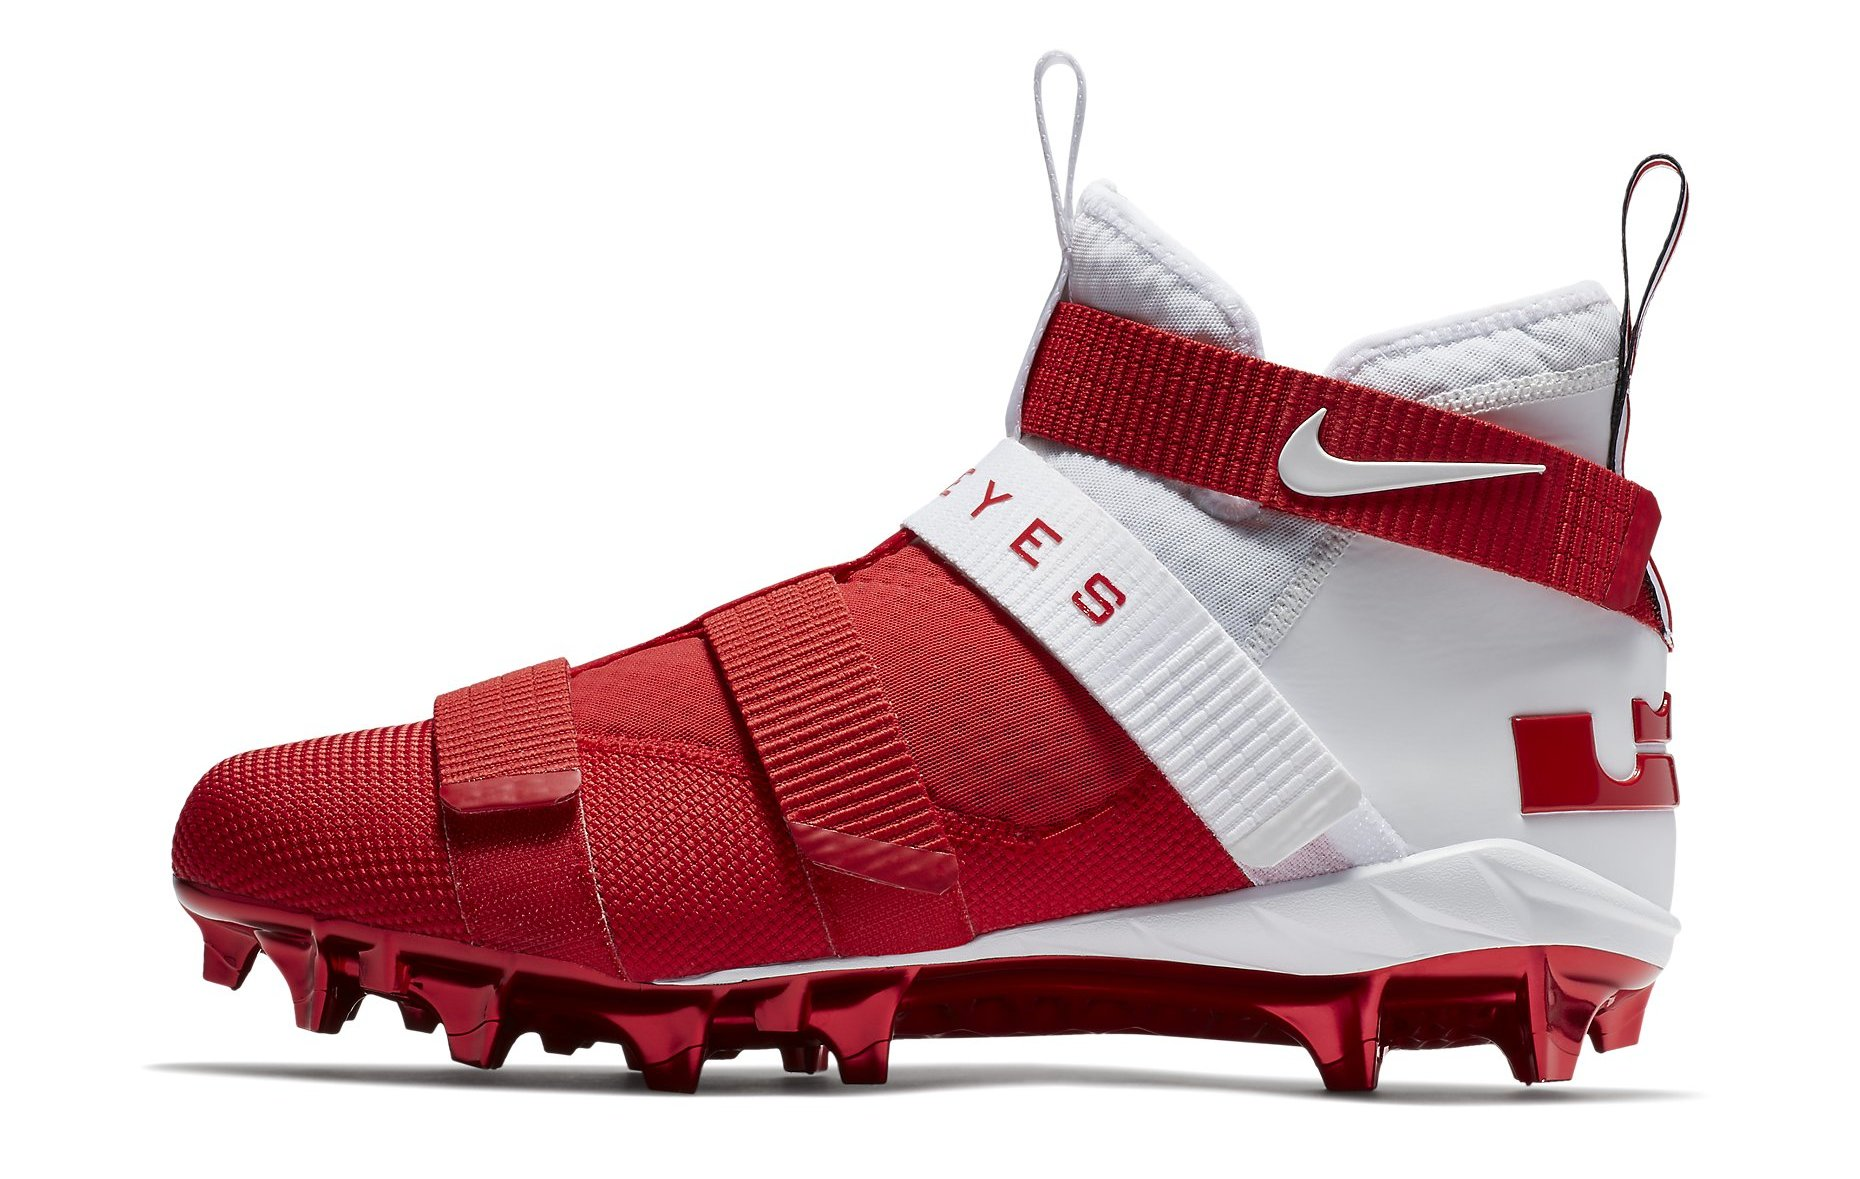 You Can Buy Those \u0027Ohio State\u0027 Nike LeBron Soldier 11 Cleats